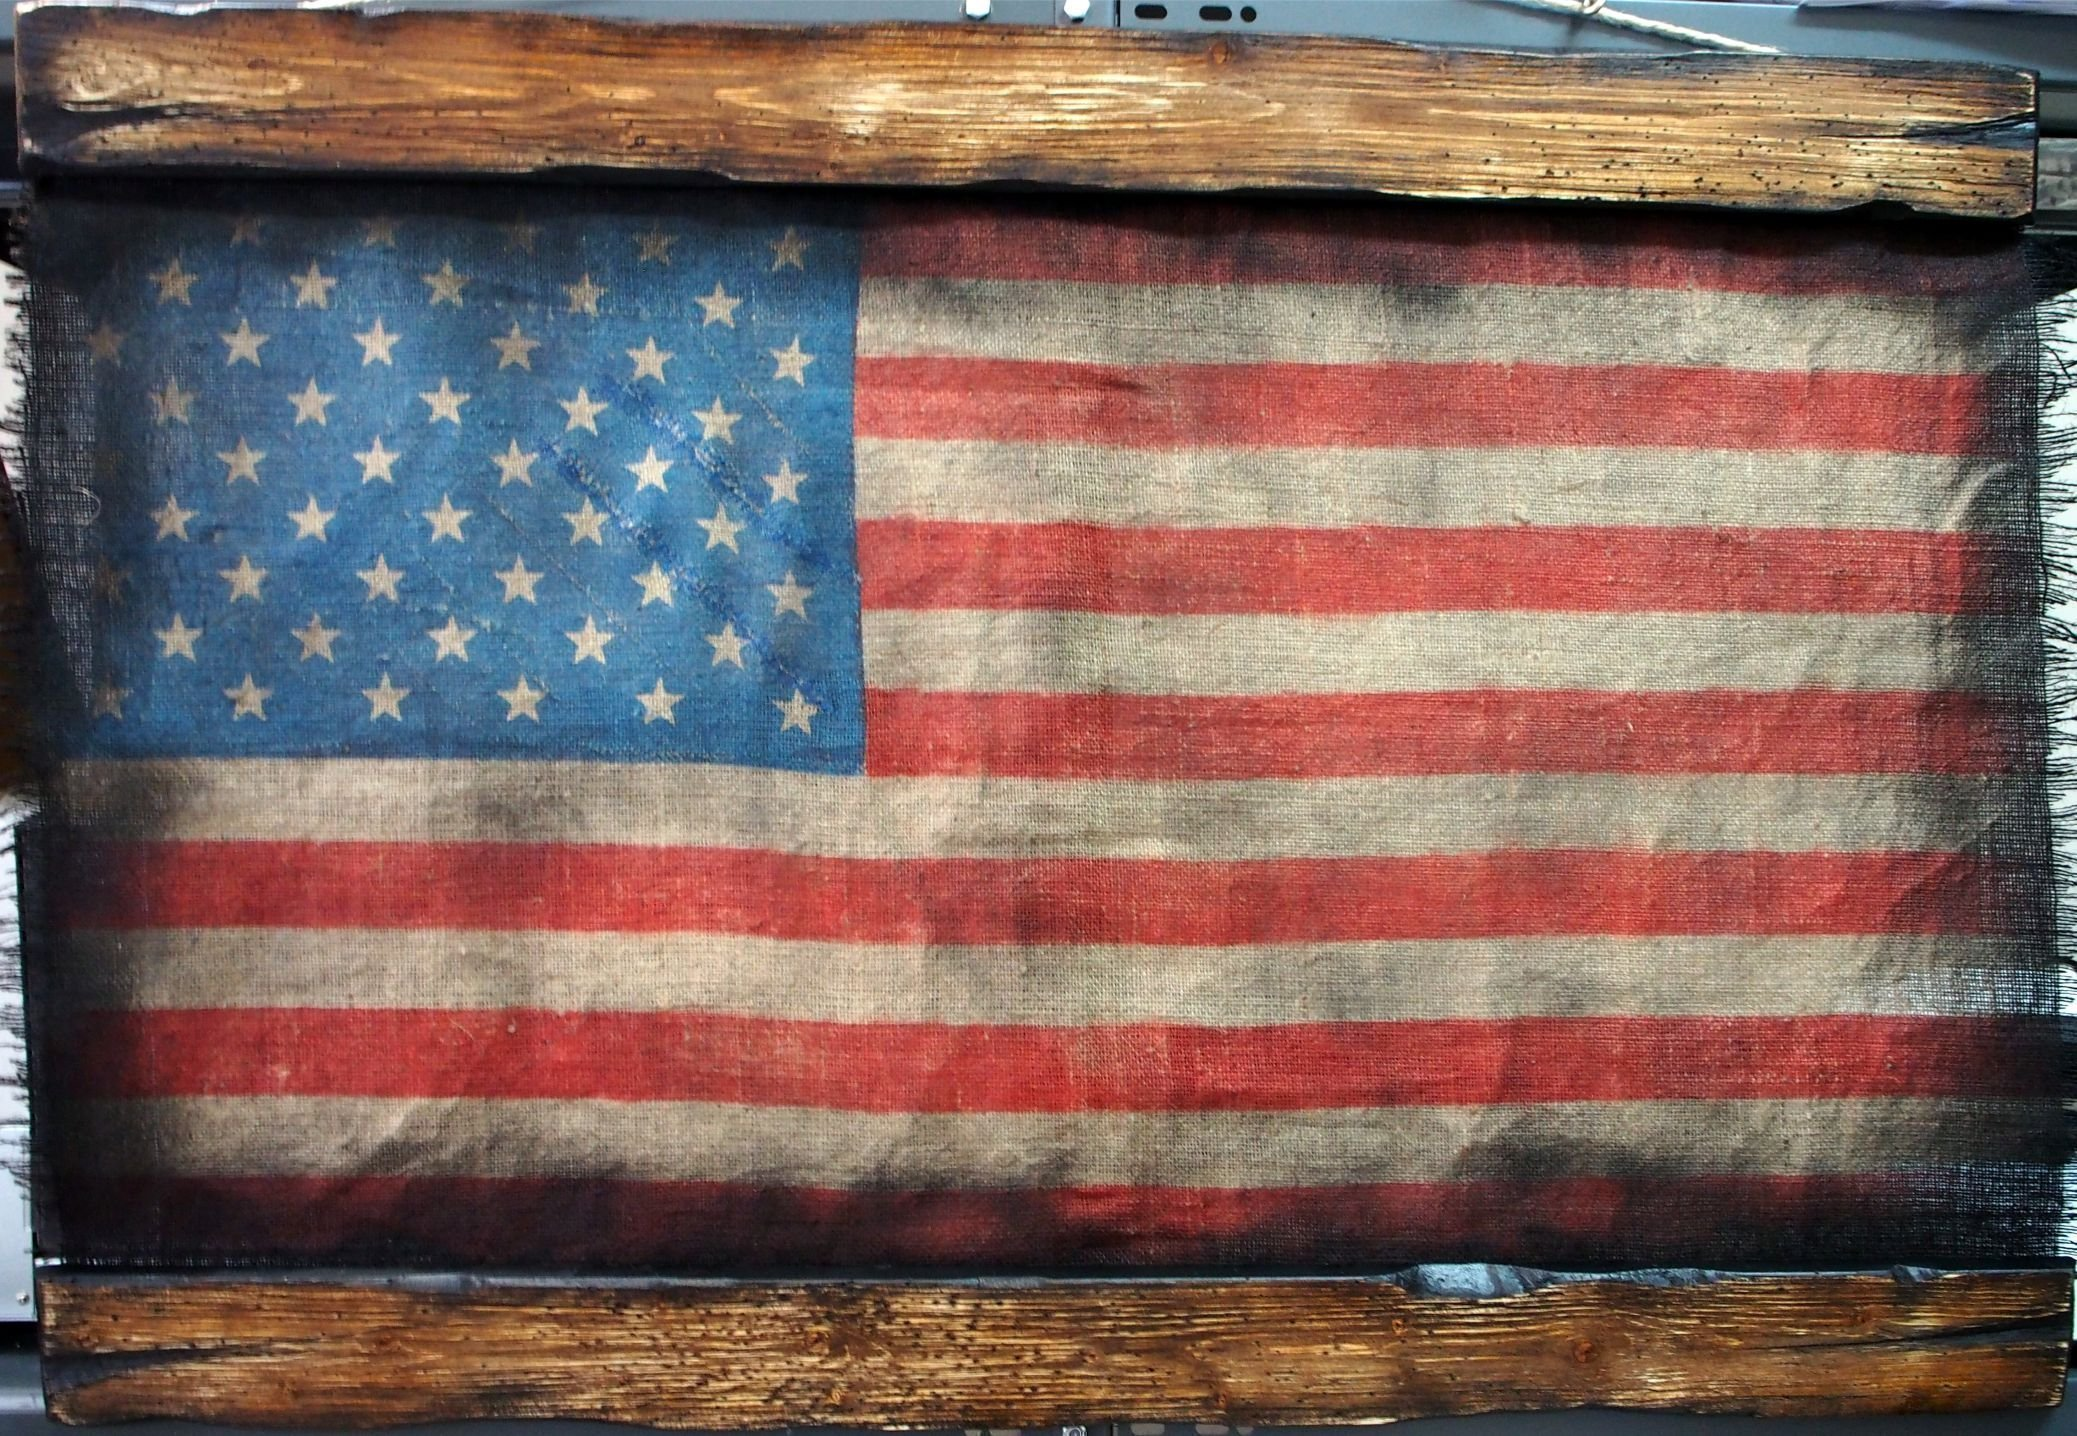 American Flag made of worn out burlap and wood | Rustic decor | American flag wall decor | Handmade flag, Personalized gift by Woodcraft City